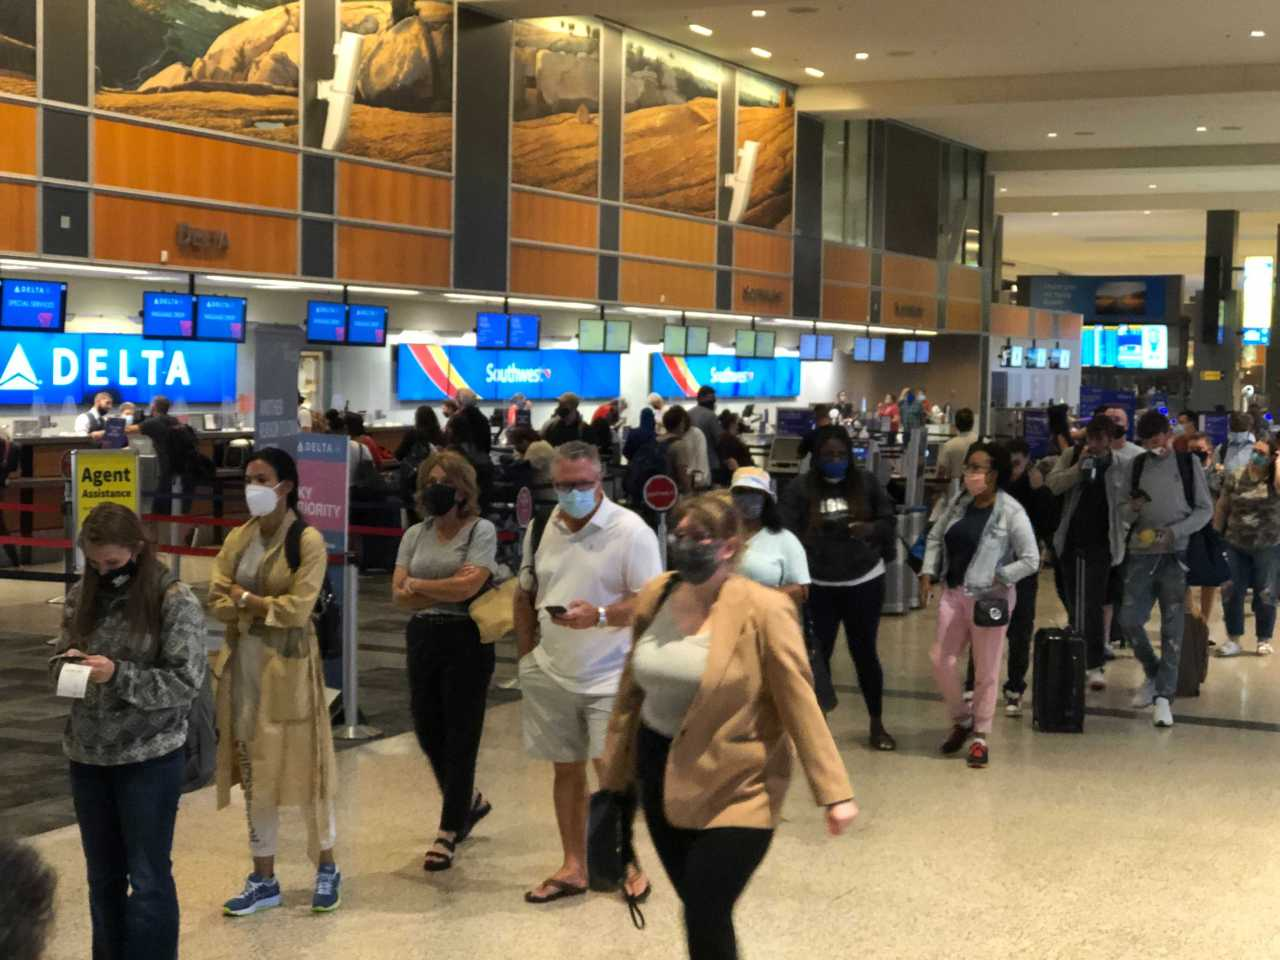 More long lines, delays at Austin airport security checkpoints Friday